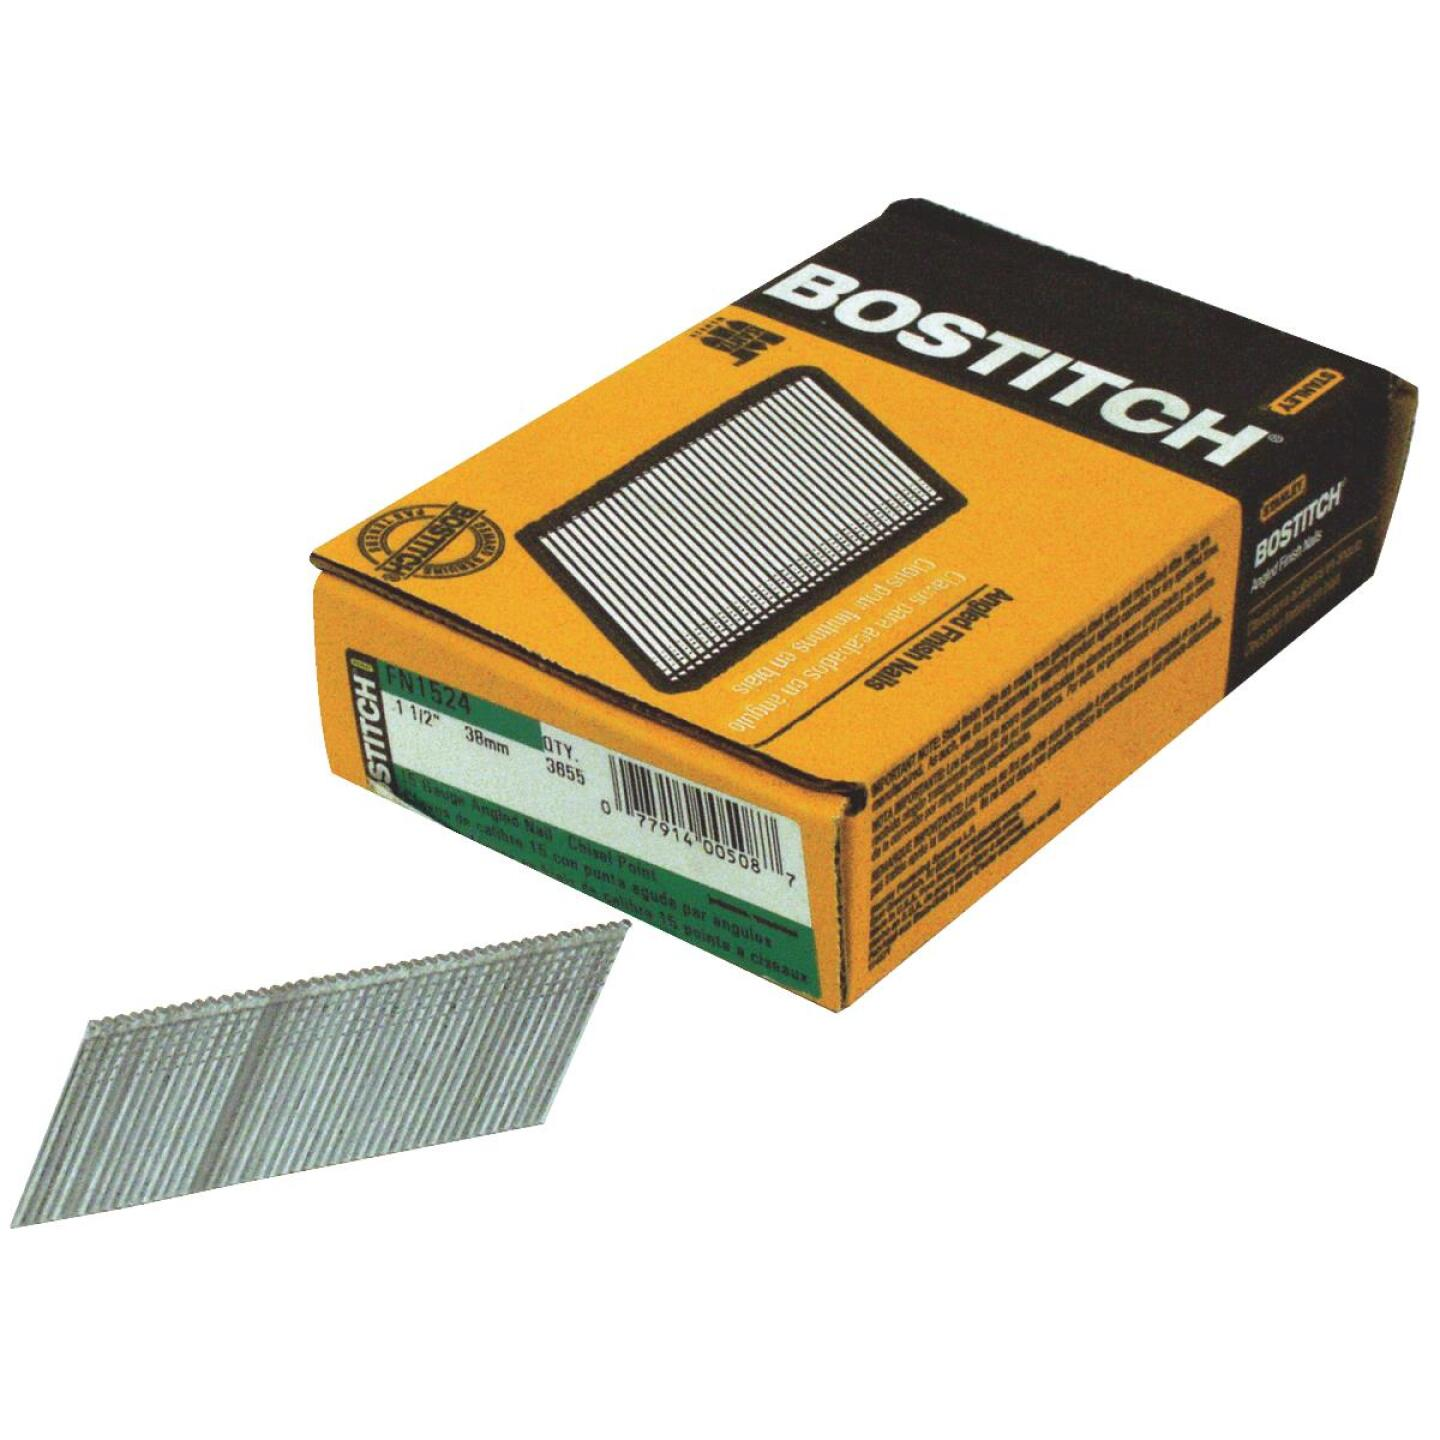 Bostitch 15-Gauge Coated 25 Degree FN-Style Angled Finish Nail, 2-1/4 In. (3655 Ct.) Image 1